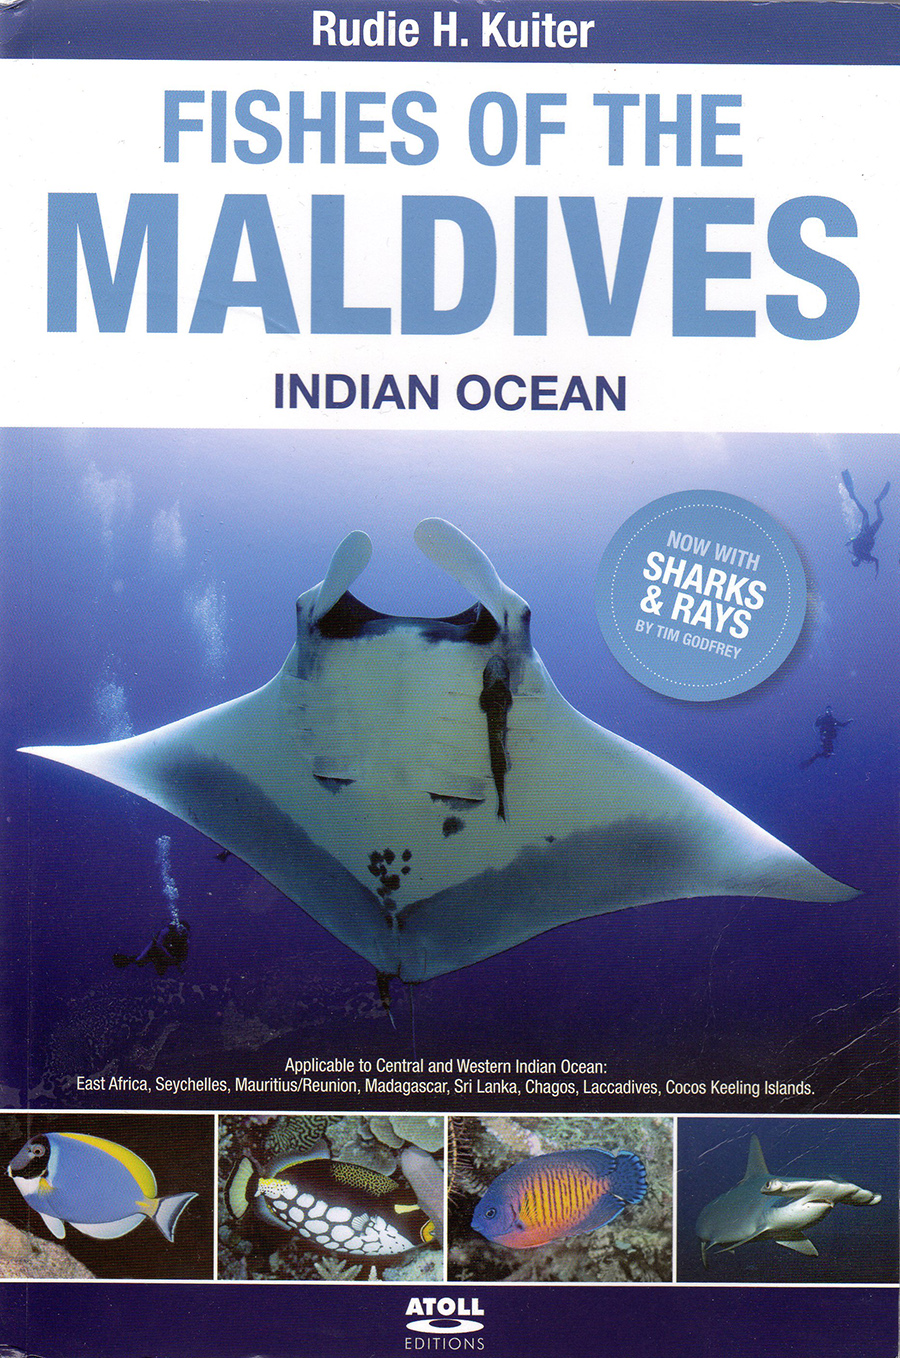 Fishes of the Maldives Rudie H. Kuiter